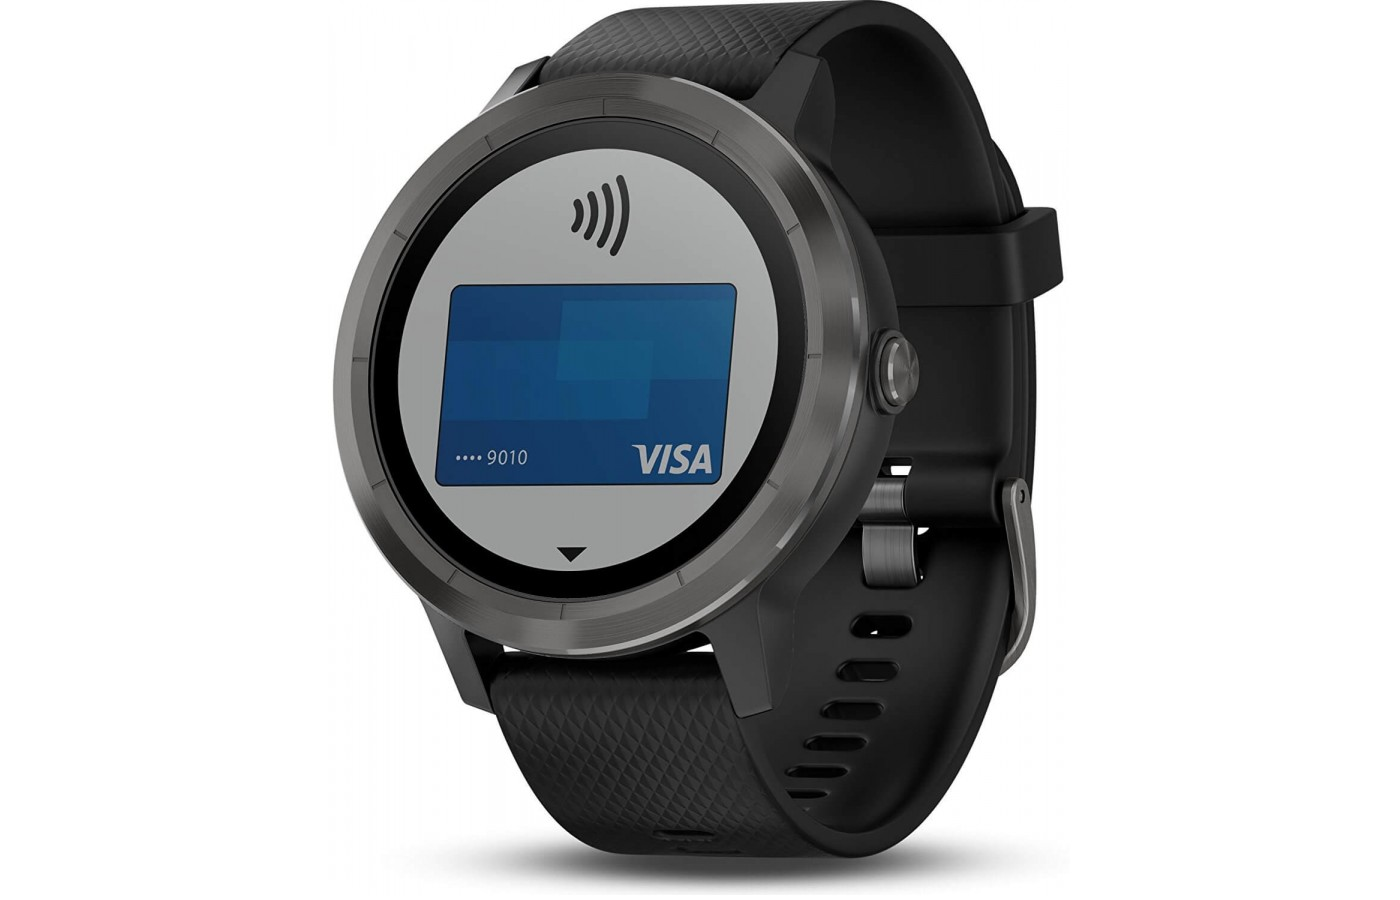 The Garmin Vivoactive 3 introduces Garmin Pay